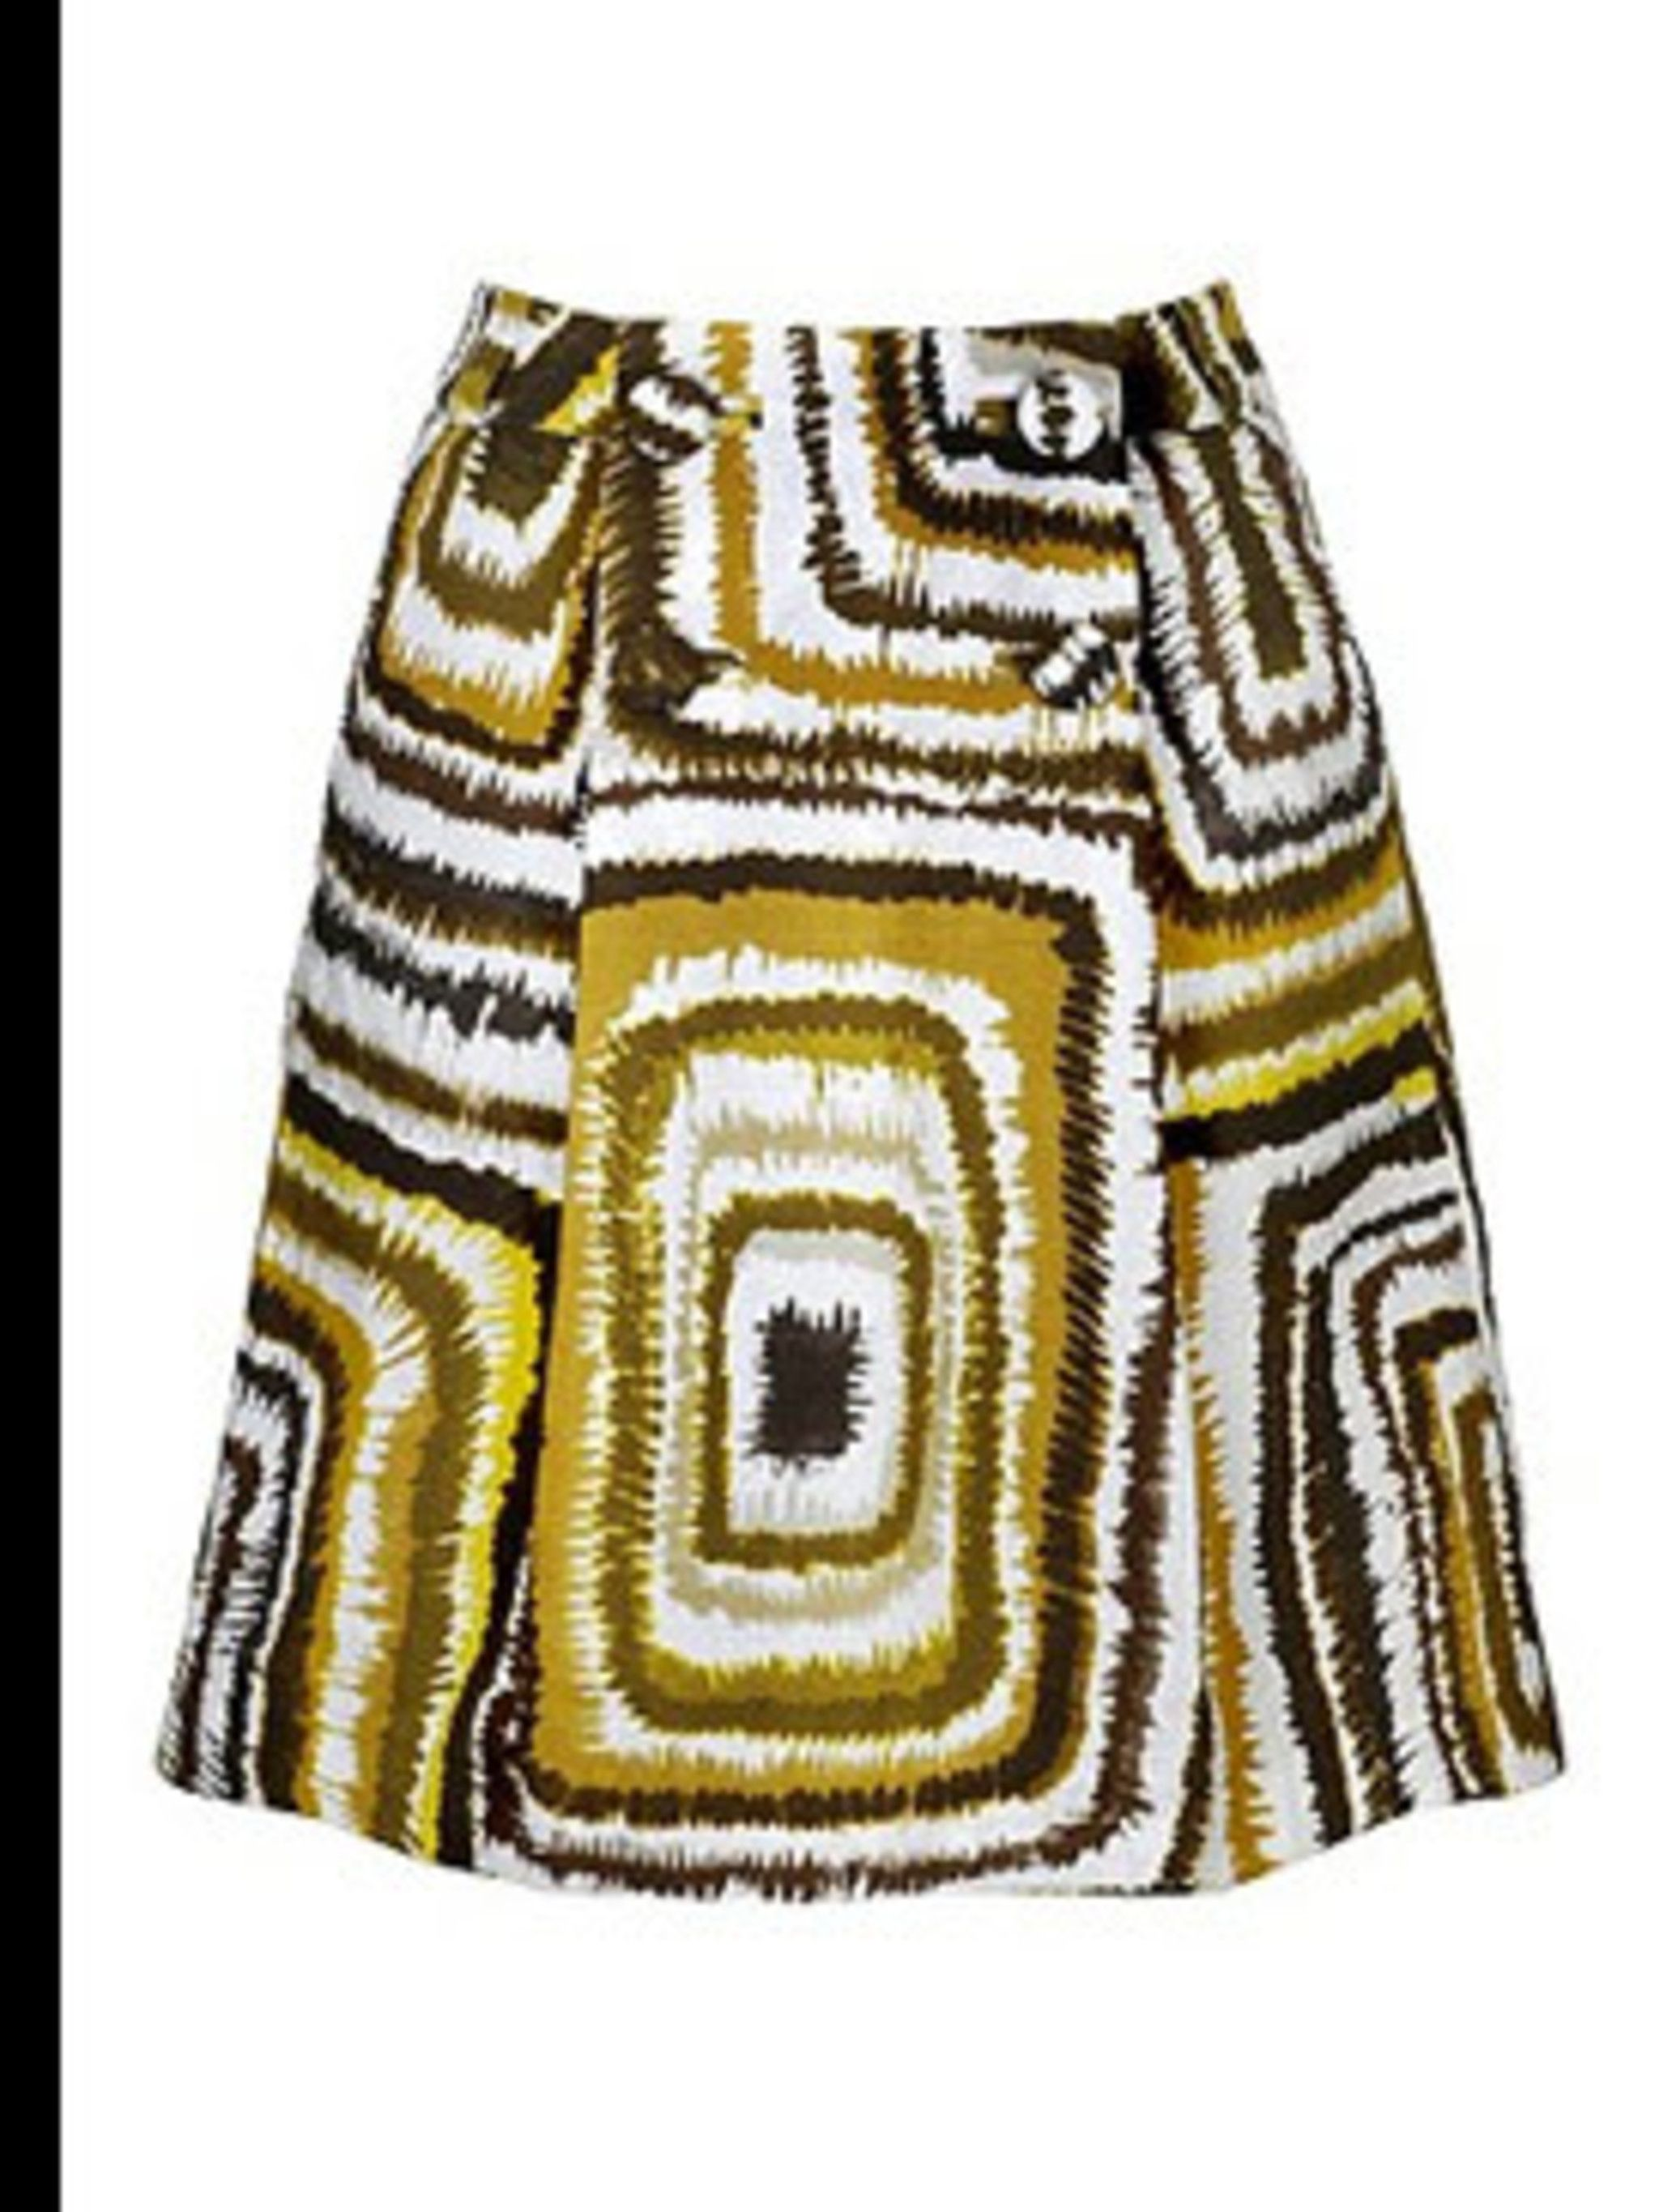 "<p>Square patterned skirt £29.99 from <a href=""http://www.hm.com"">H&amp&#x3B;M</a>